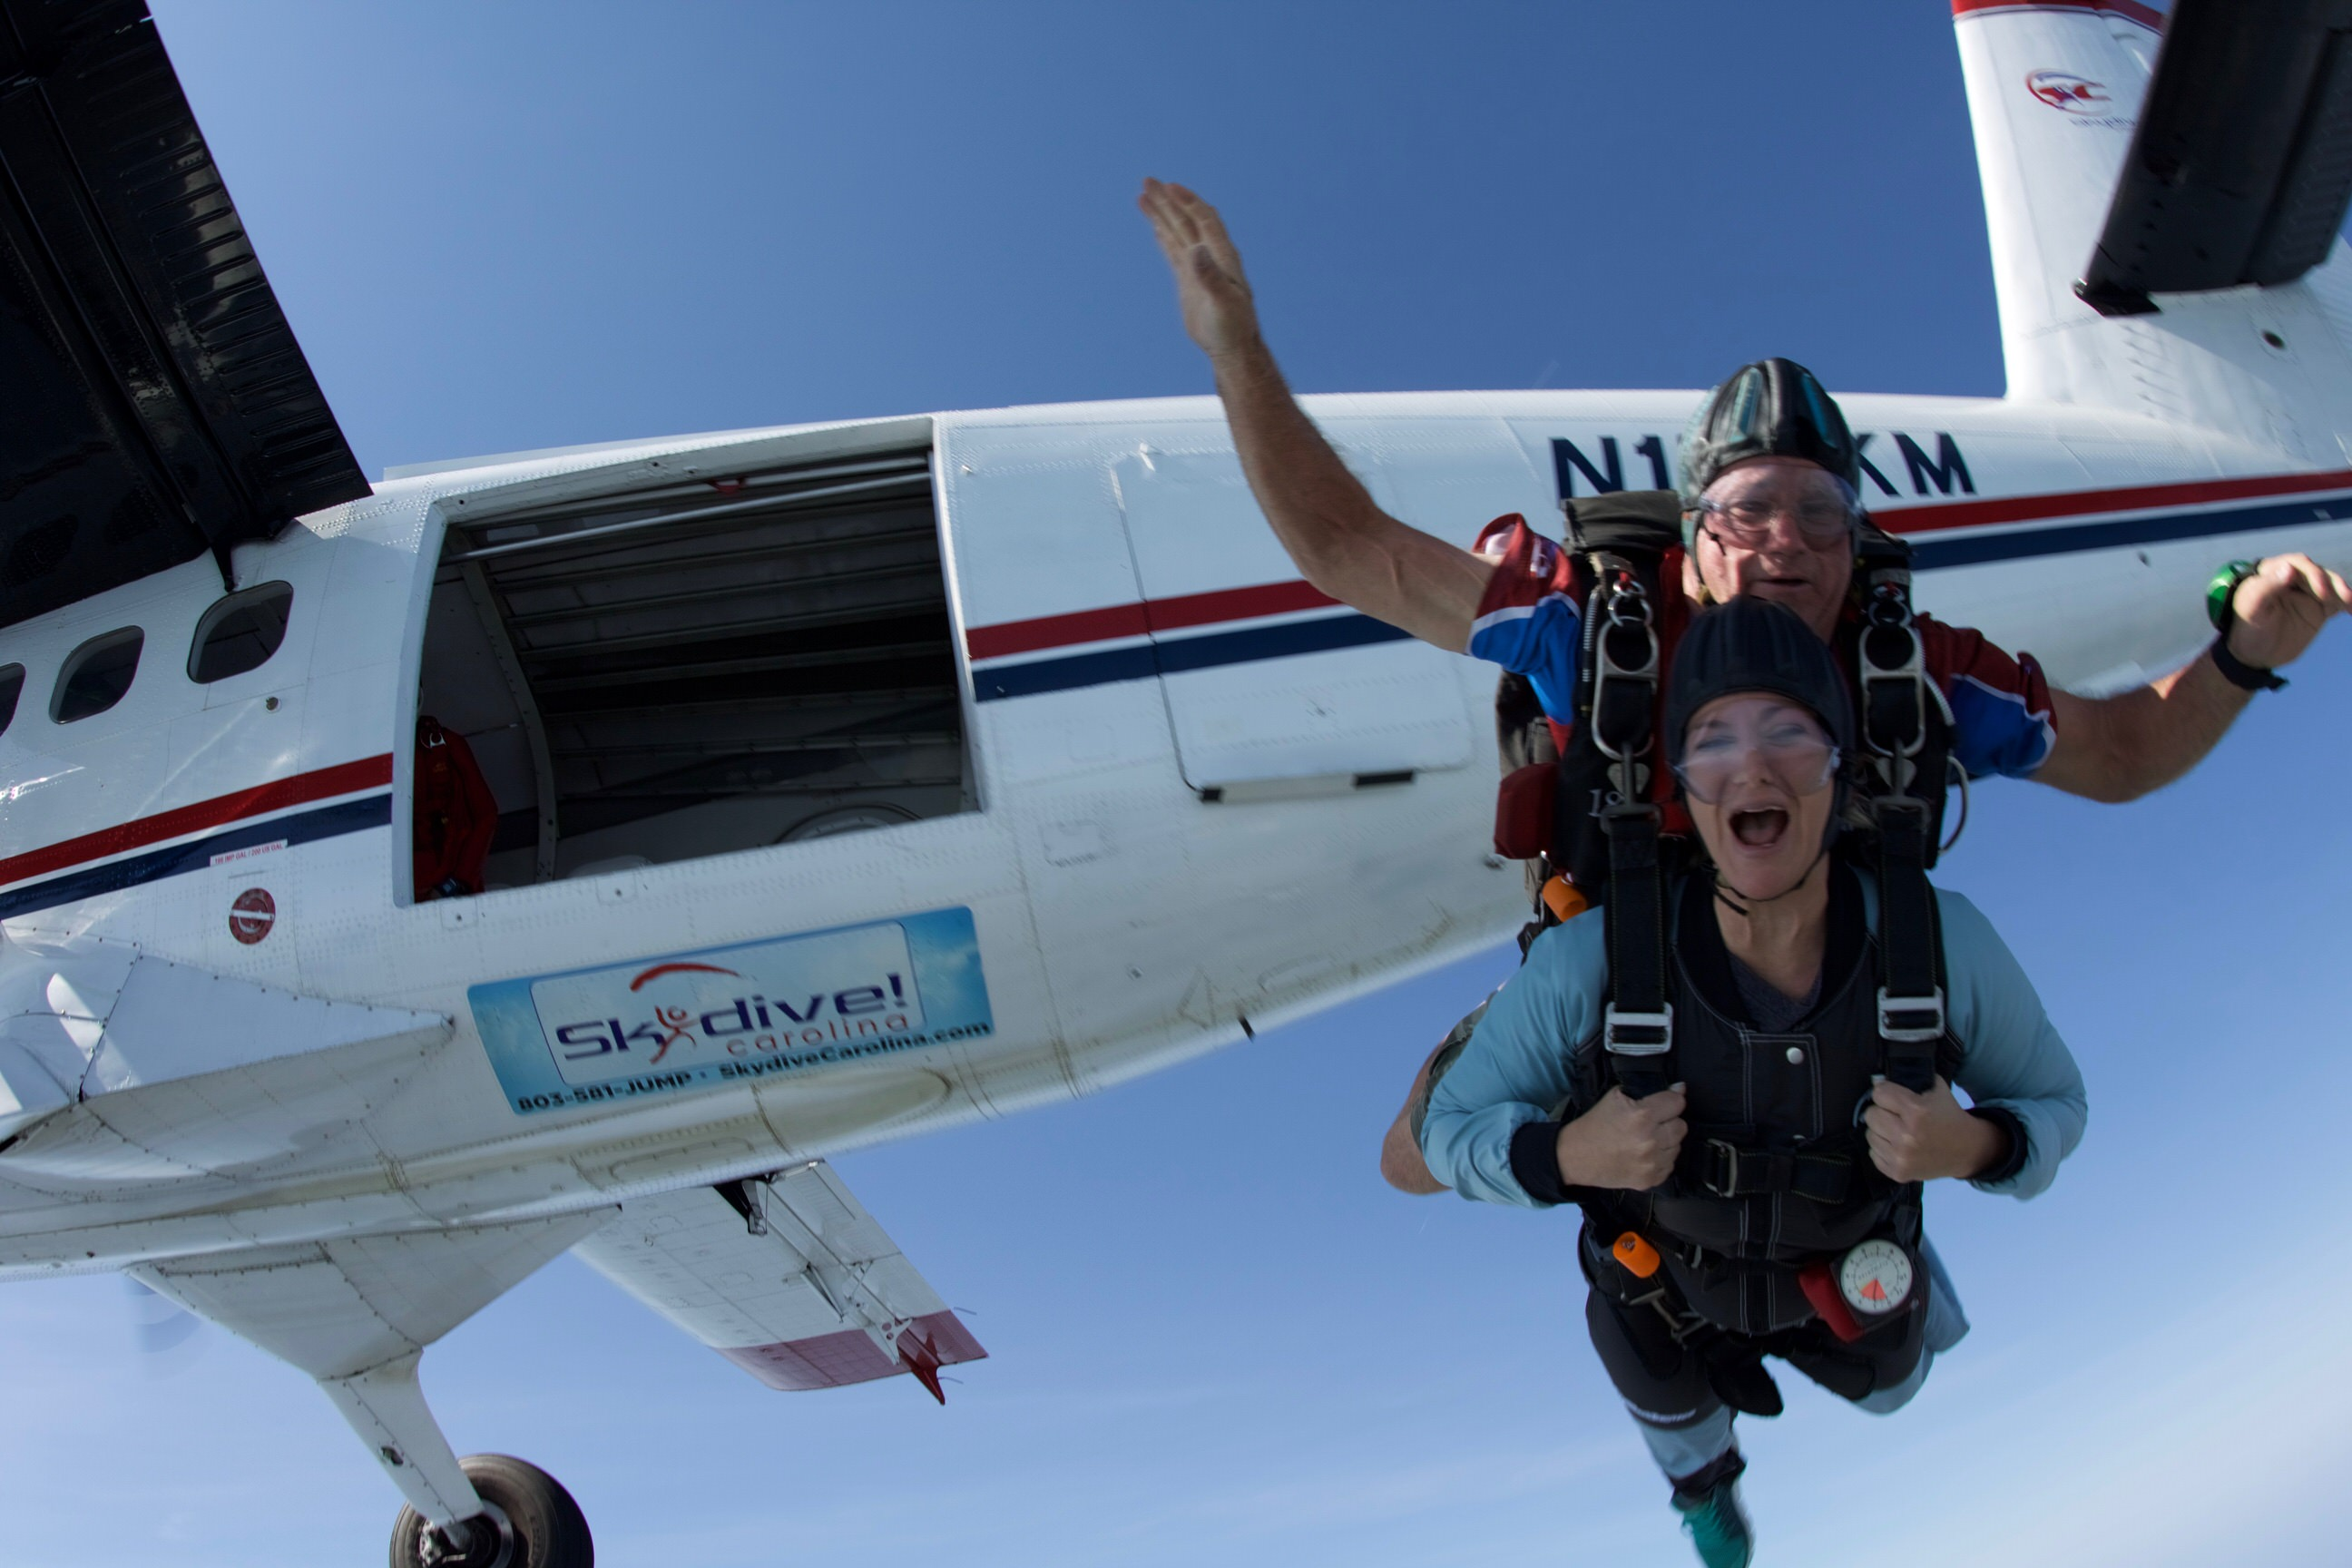 Exiting a Twin Otter aircraft